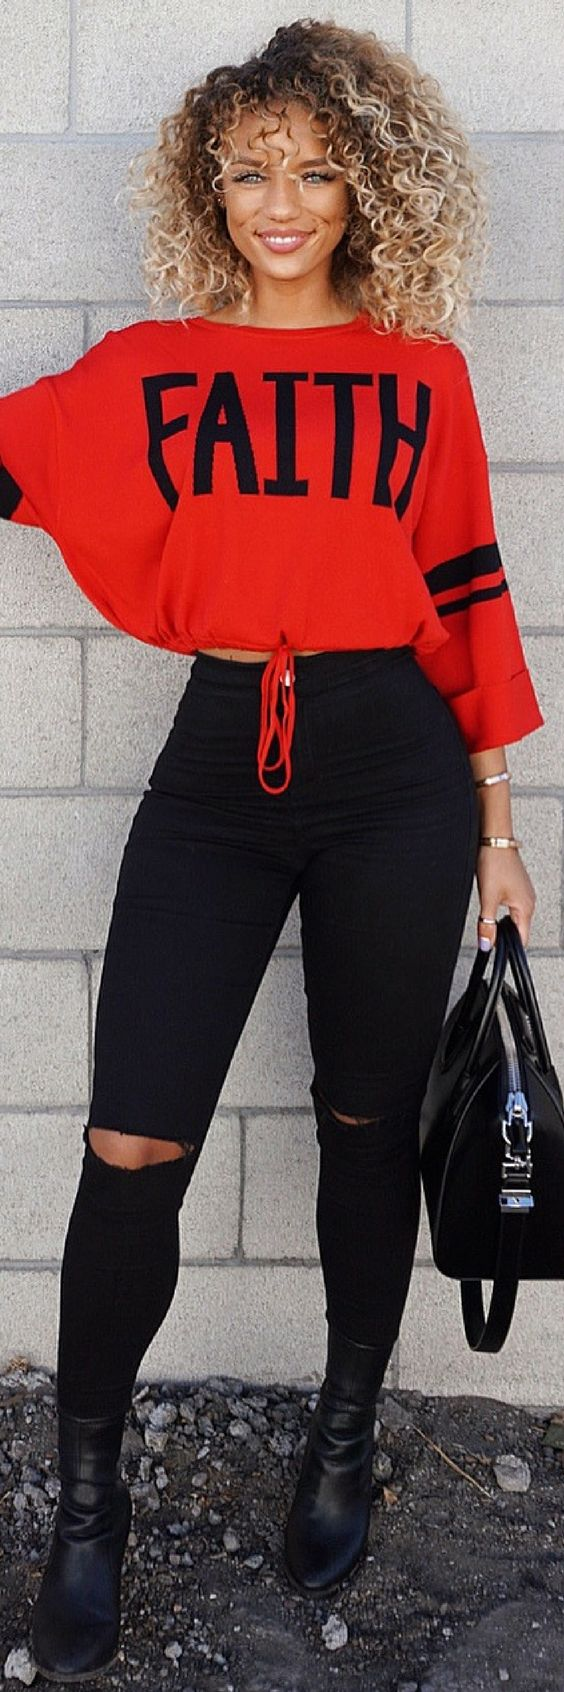 10 Of The Best Winter Outfits That Look Fantastic https://ecstasymodels.blog/2017/12/12/10-best-winter-outfits-look-fantastic/